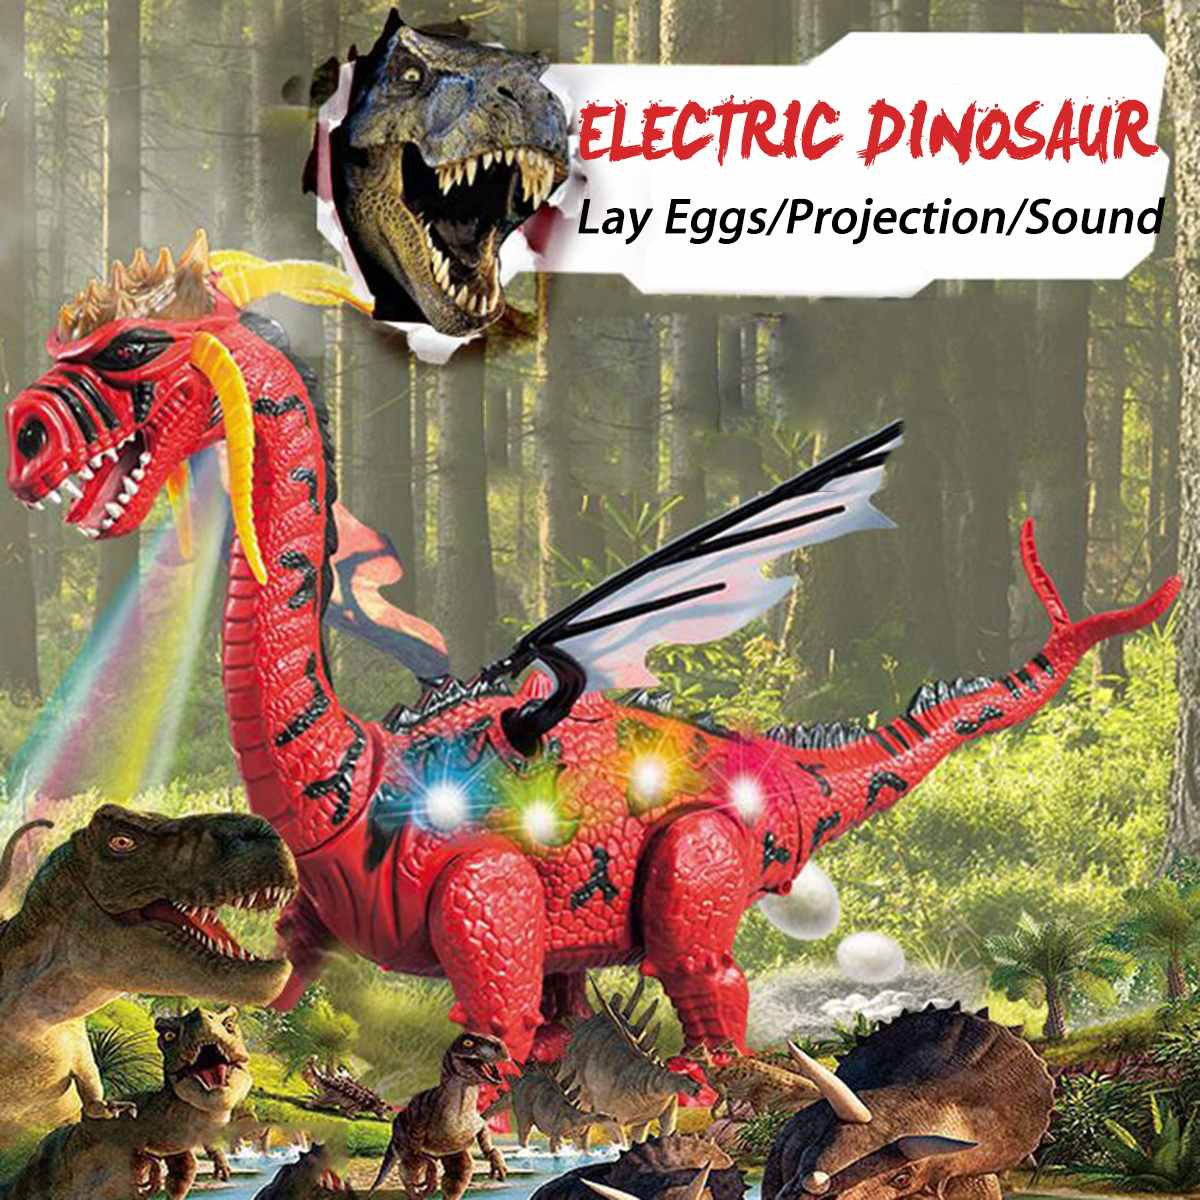 Children Electric Walking Dinosaur Robot Toy Lay Eggs Projection Lights Roar Sounds Kids Enlightening RC Toy Boy Christmas Gift